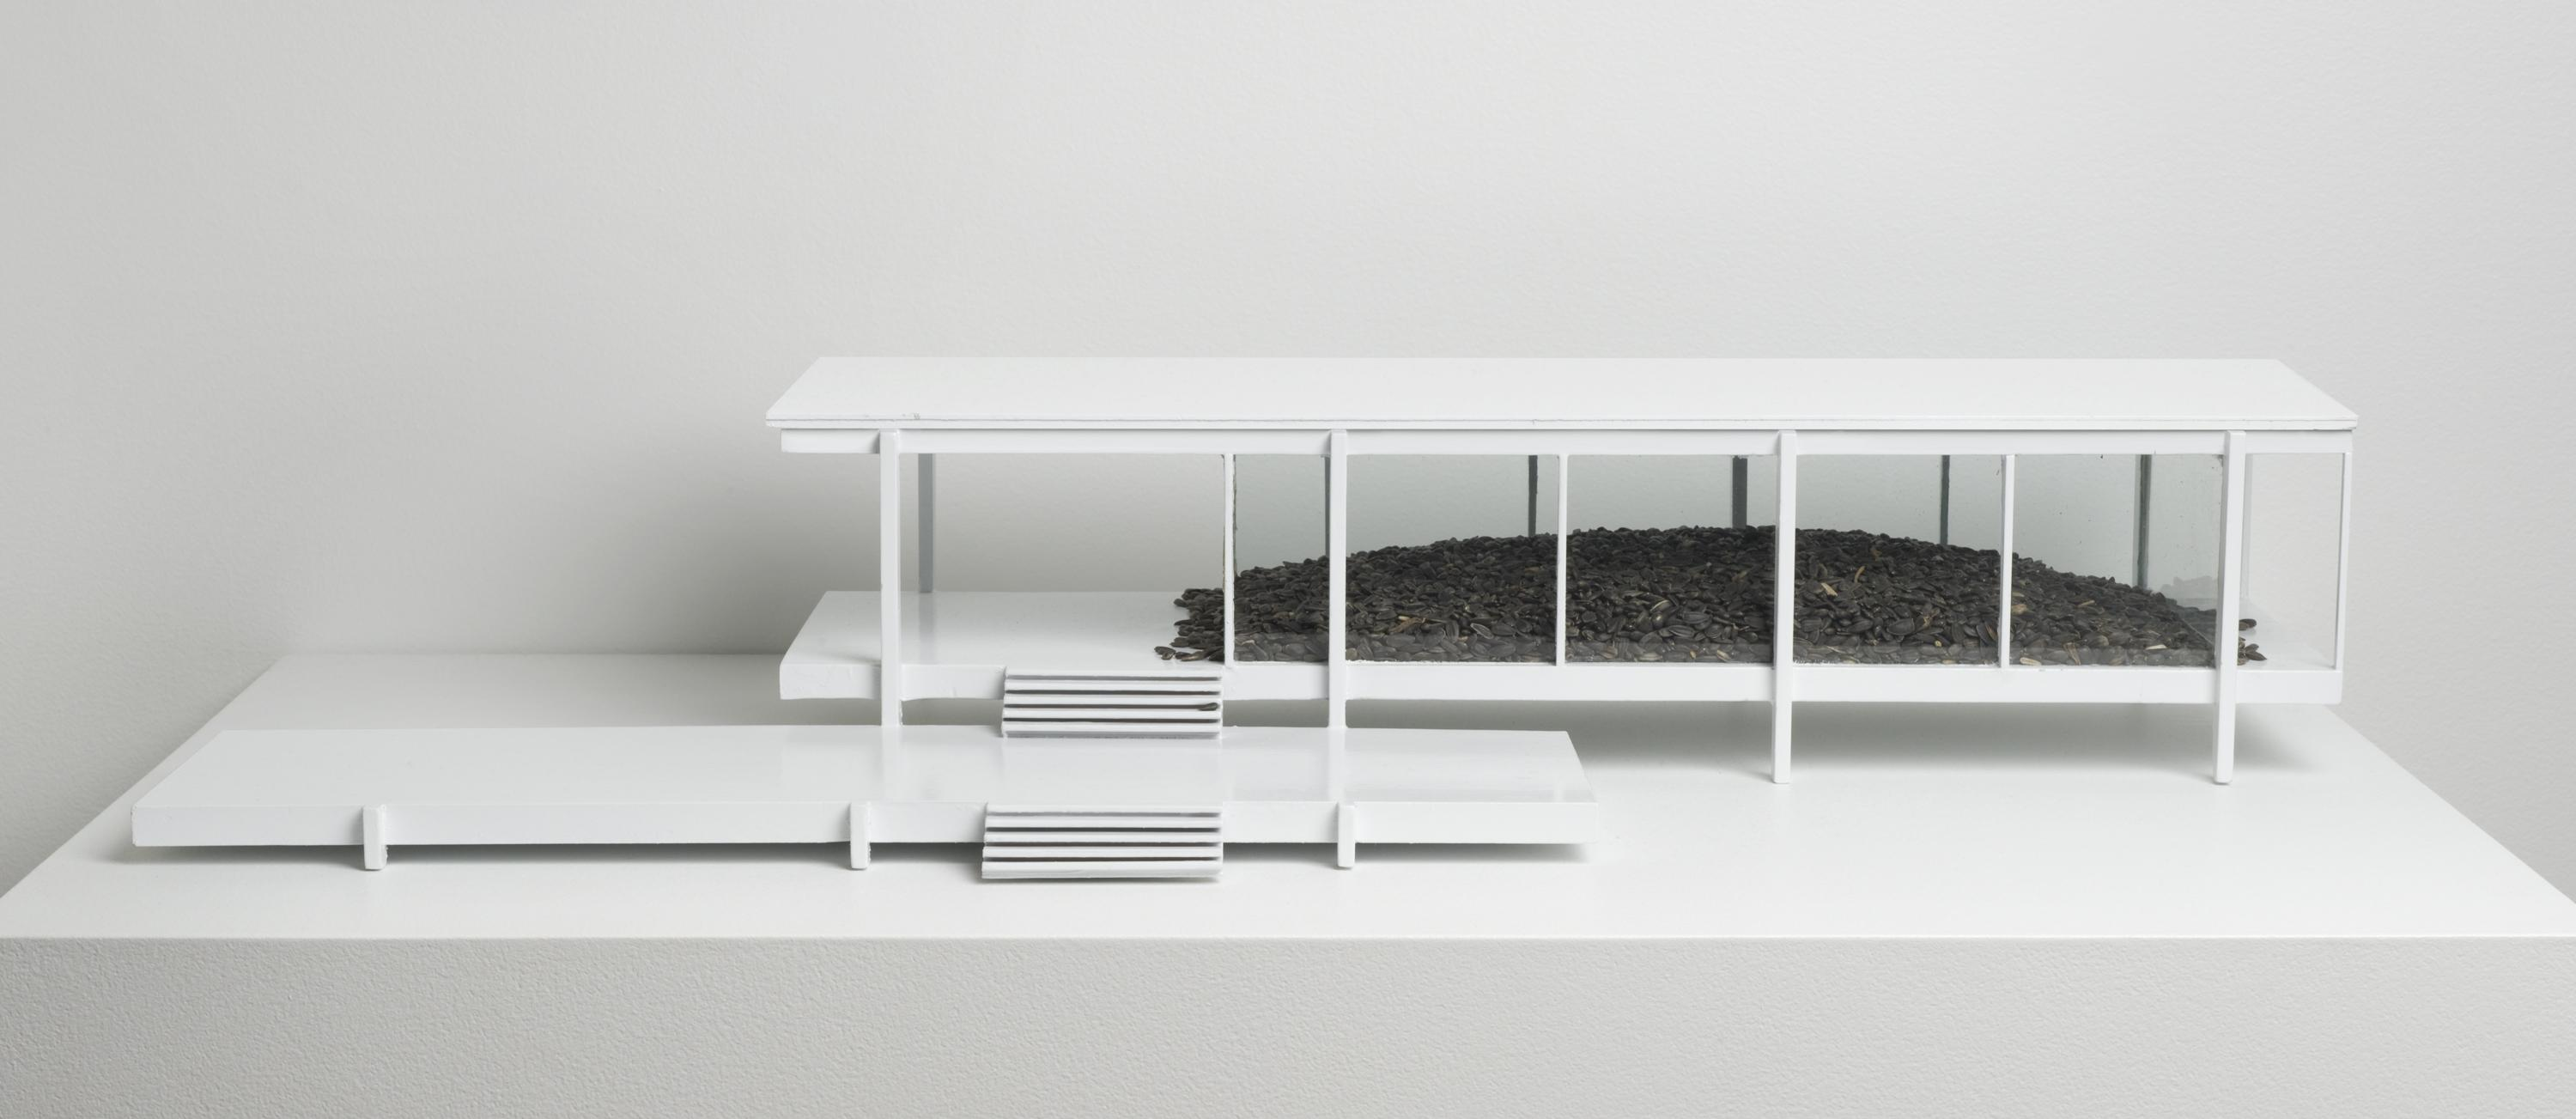 A model of a minimal, white building with floor-to-ceiling windows reveals an interior that holds a mound of dark, organic material.